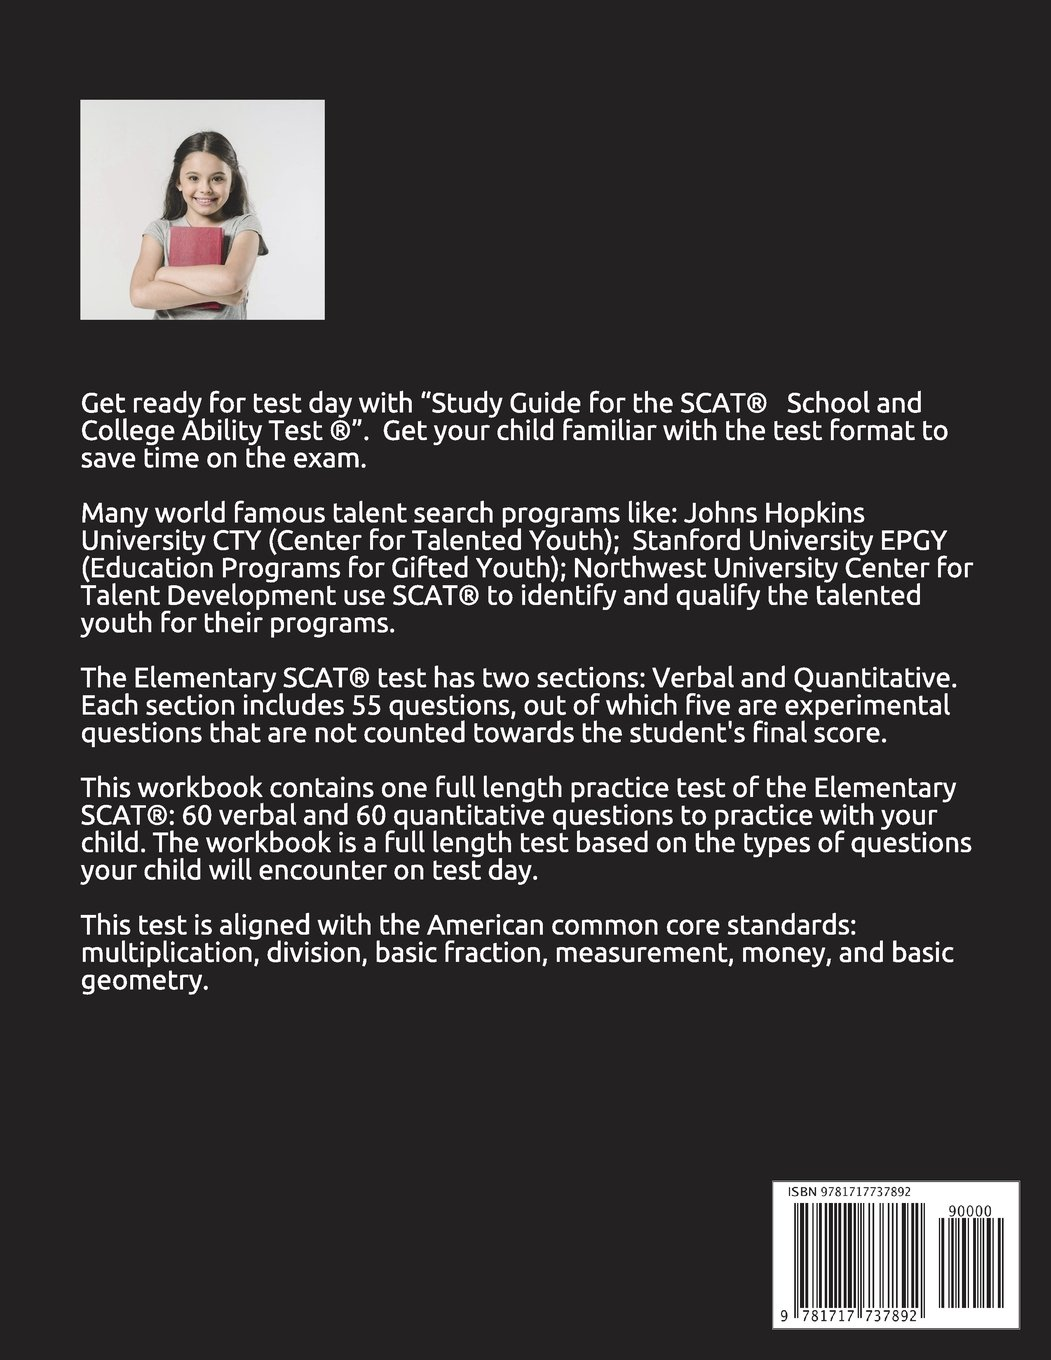 Study Guide for the SCAT (R) School and College Ability Test (R): SCAT Publishing: 9781717737892: Books - Amazon.ca